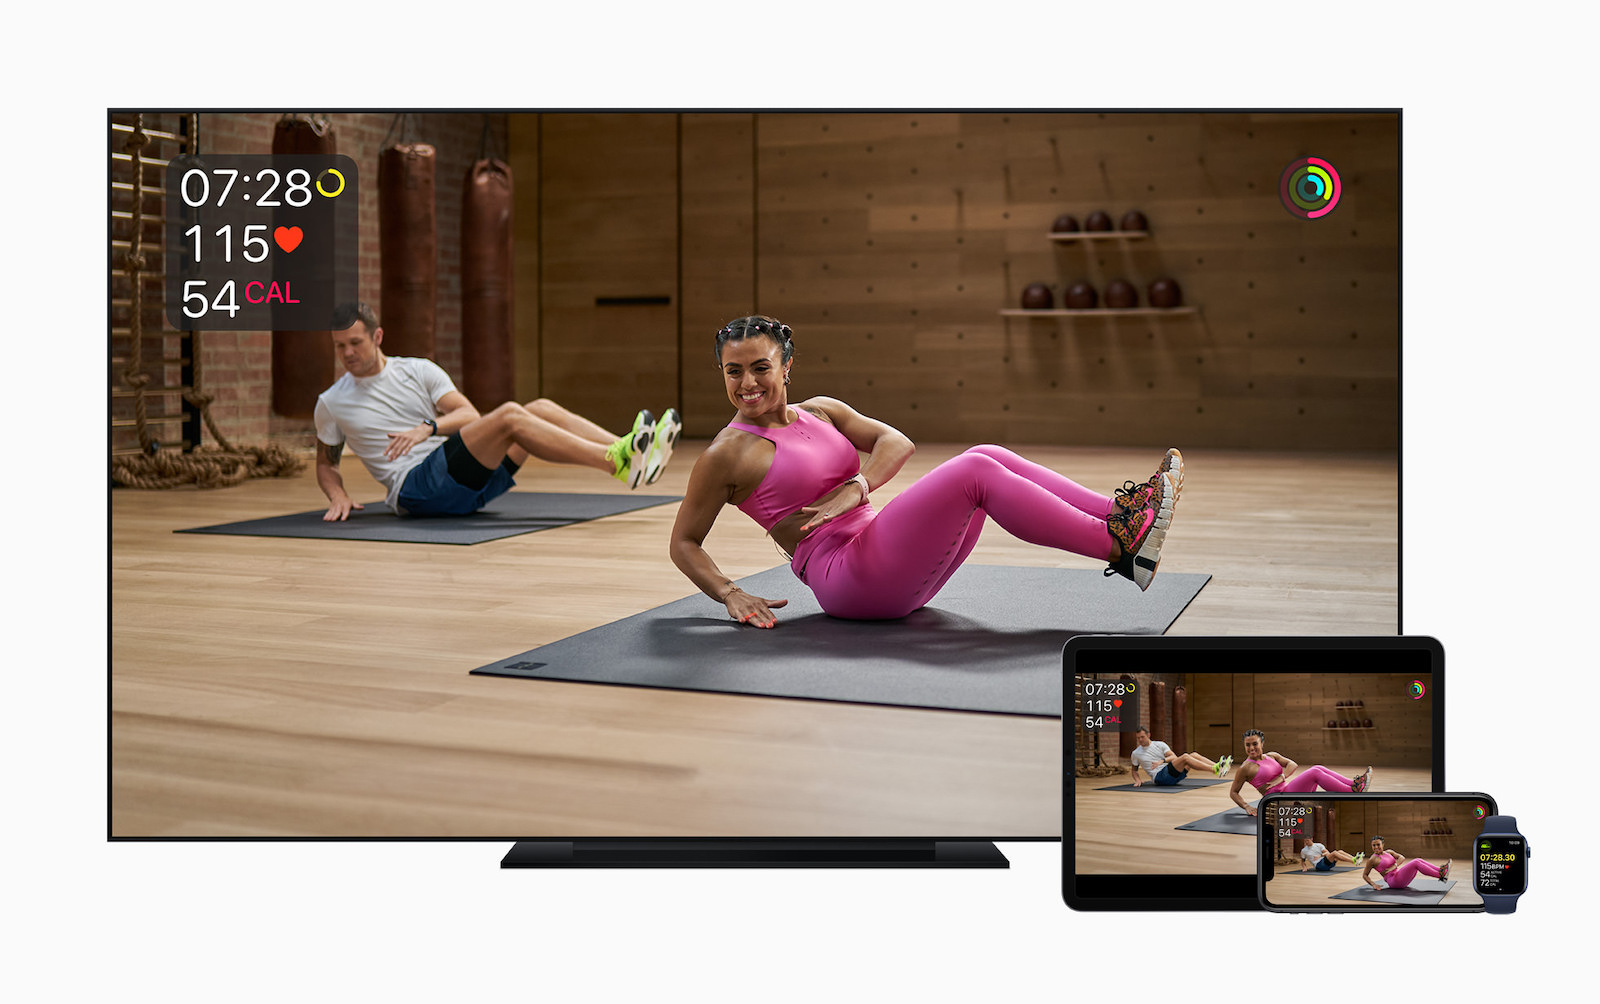 Apple fitness plus screens appletv ipadpro applewatch iphone11 09152020